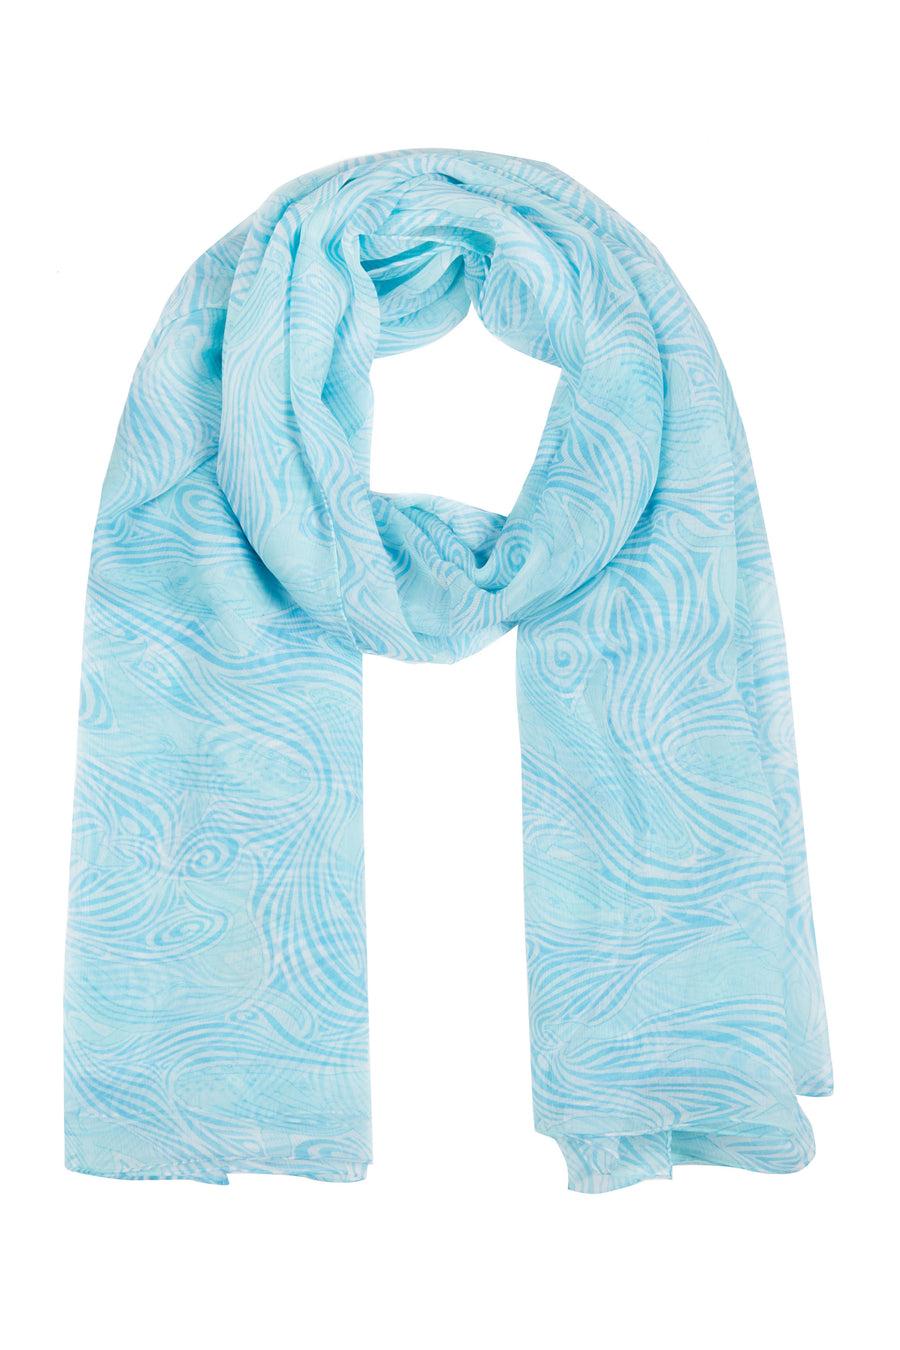 Silk scarf sarong in Whale turquoise design by Lotty B hand screen printed on crepe-de-chine. Mustique island lifestyle.